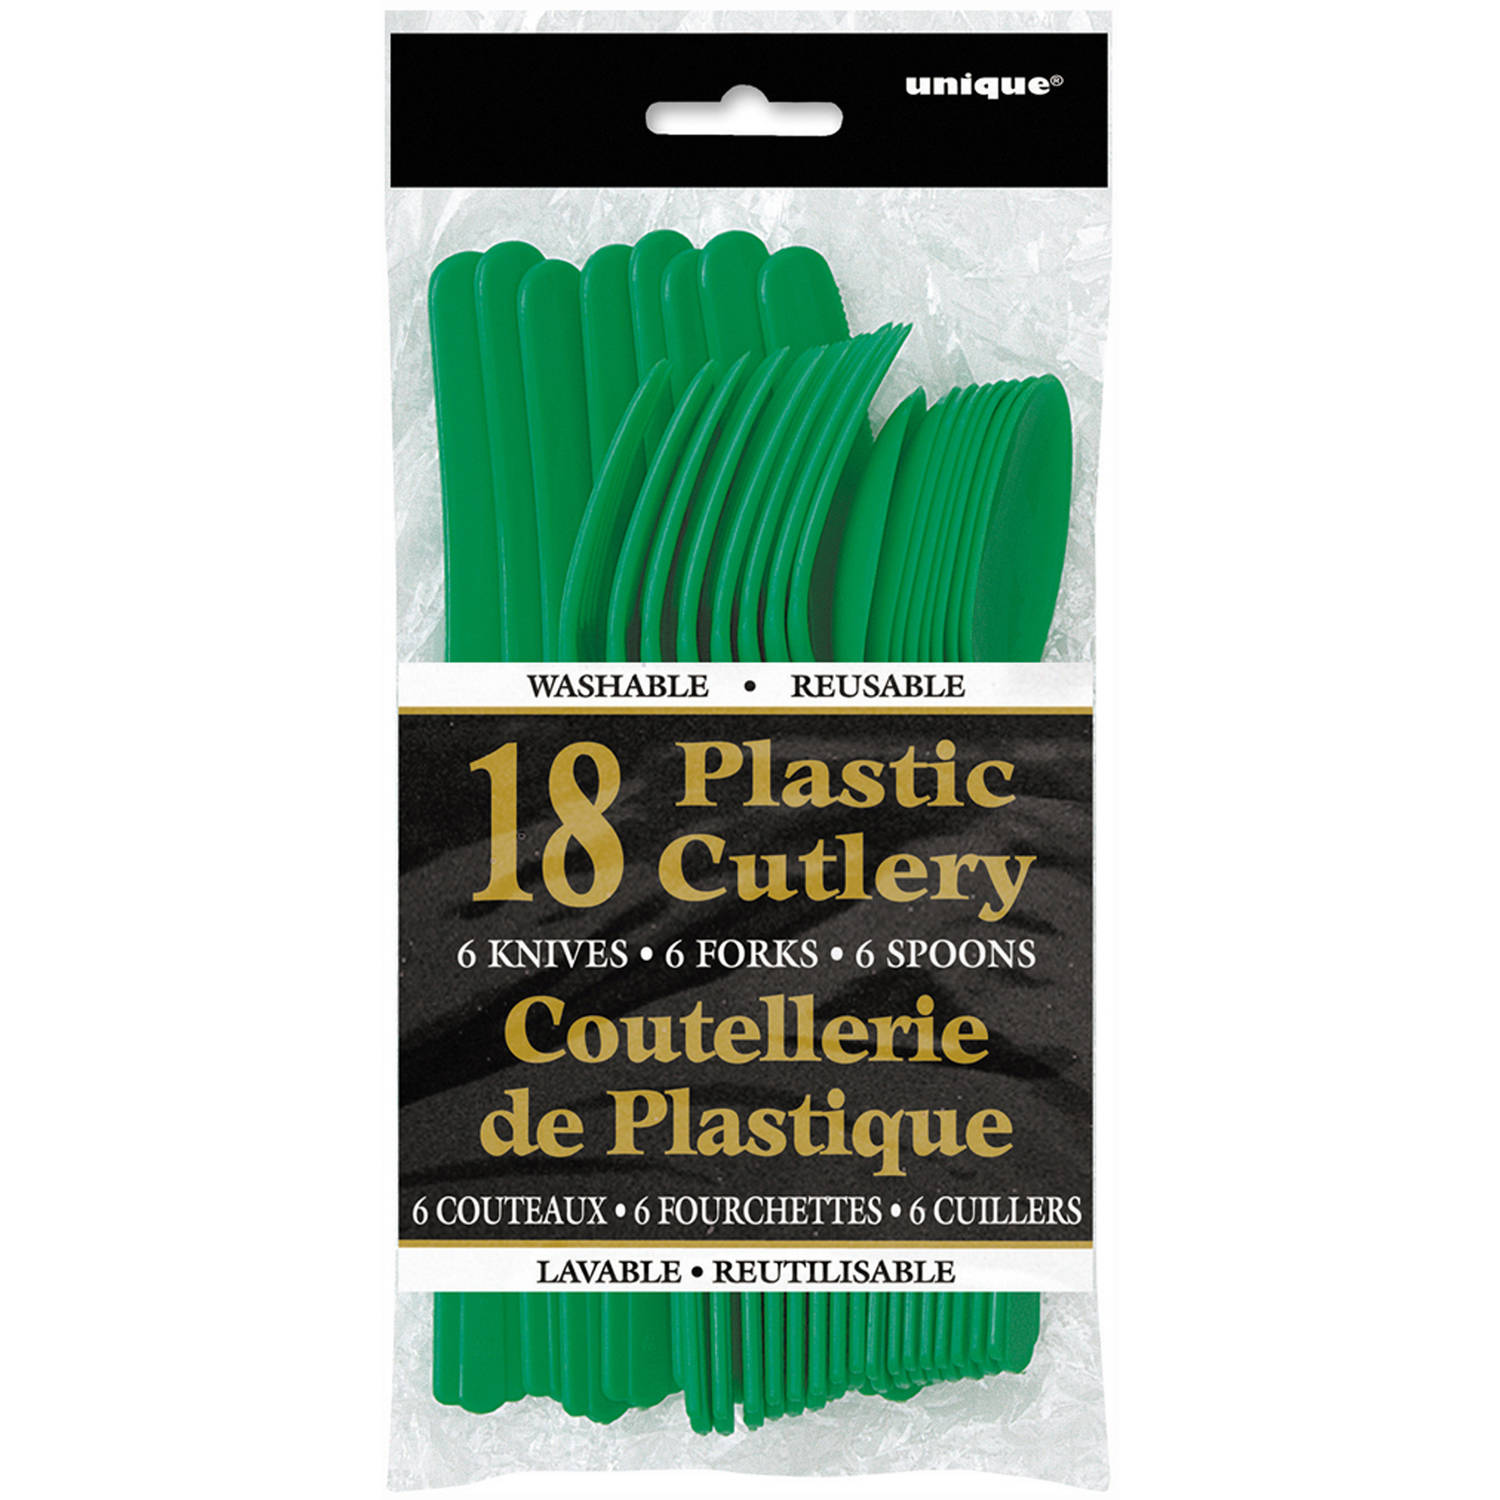 Assorted Plastic Silverware for 6, Green, 18pc